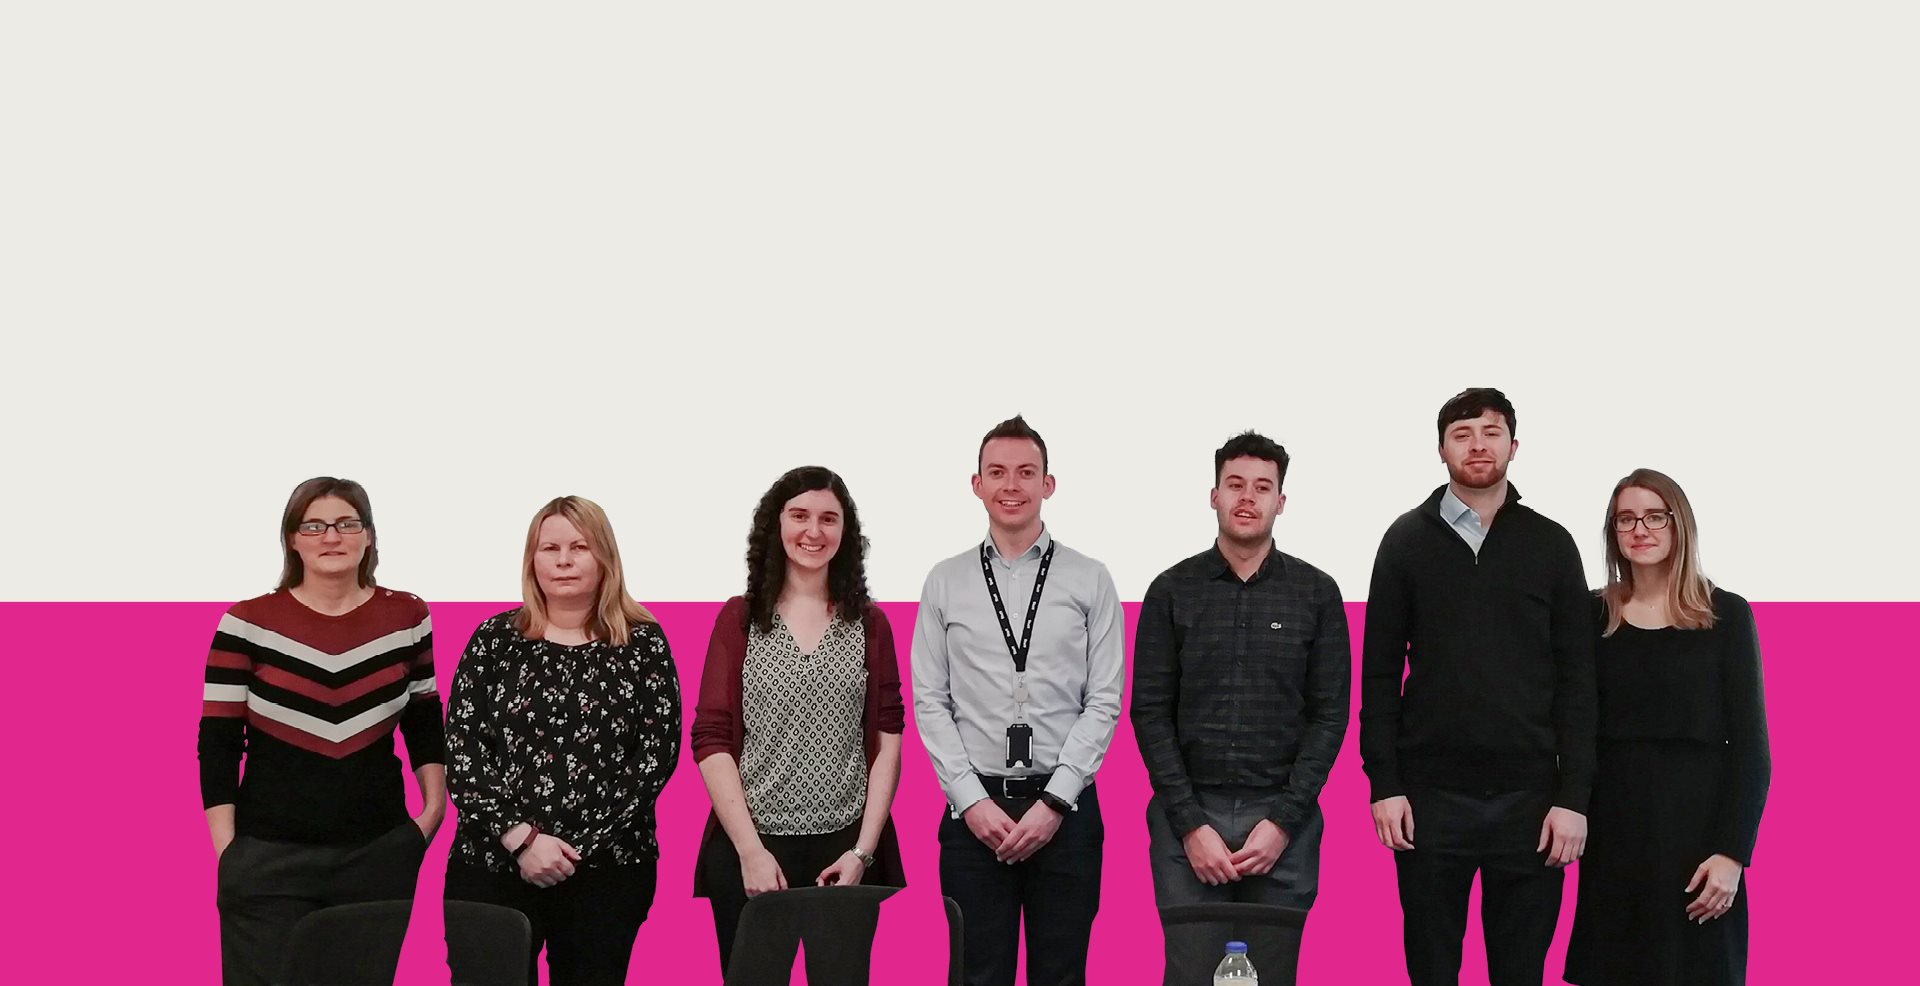 Human factors team in front of a Mott MacDonald branded background